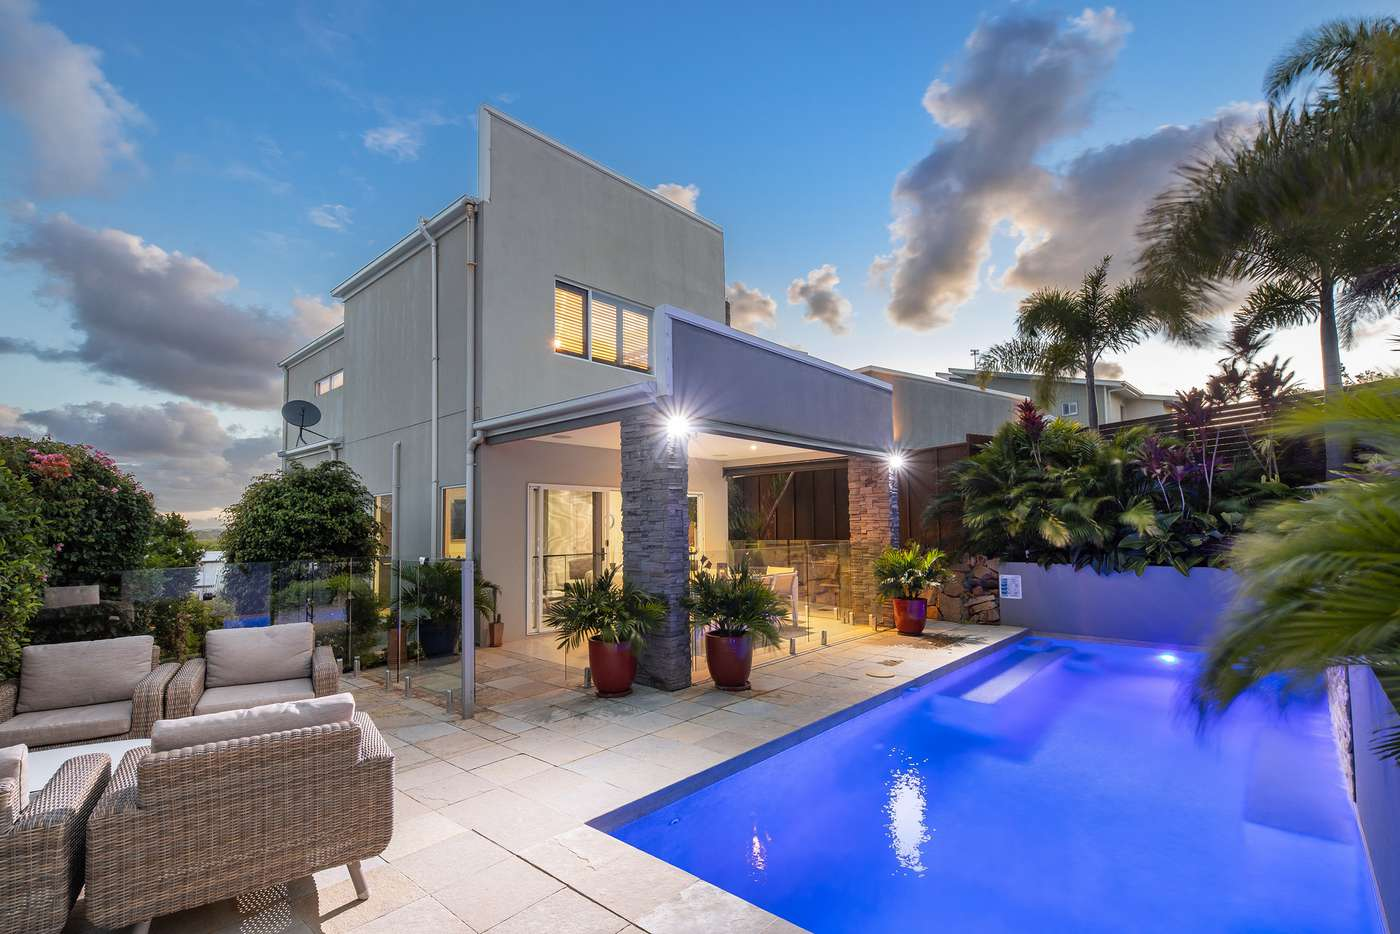 Main view of Homely house listing, 16 Donegal Drive, Yaroomba QLD 4573